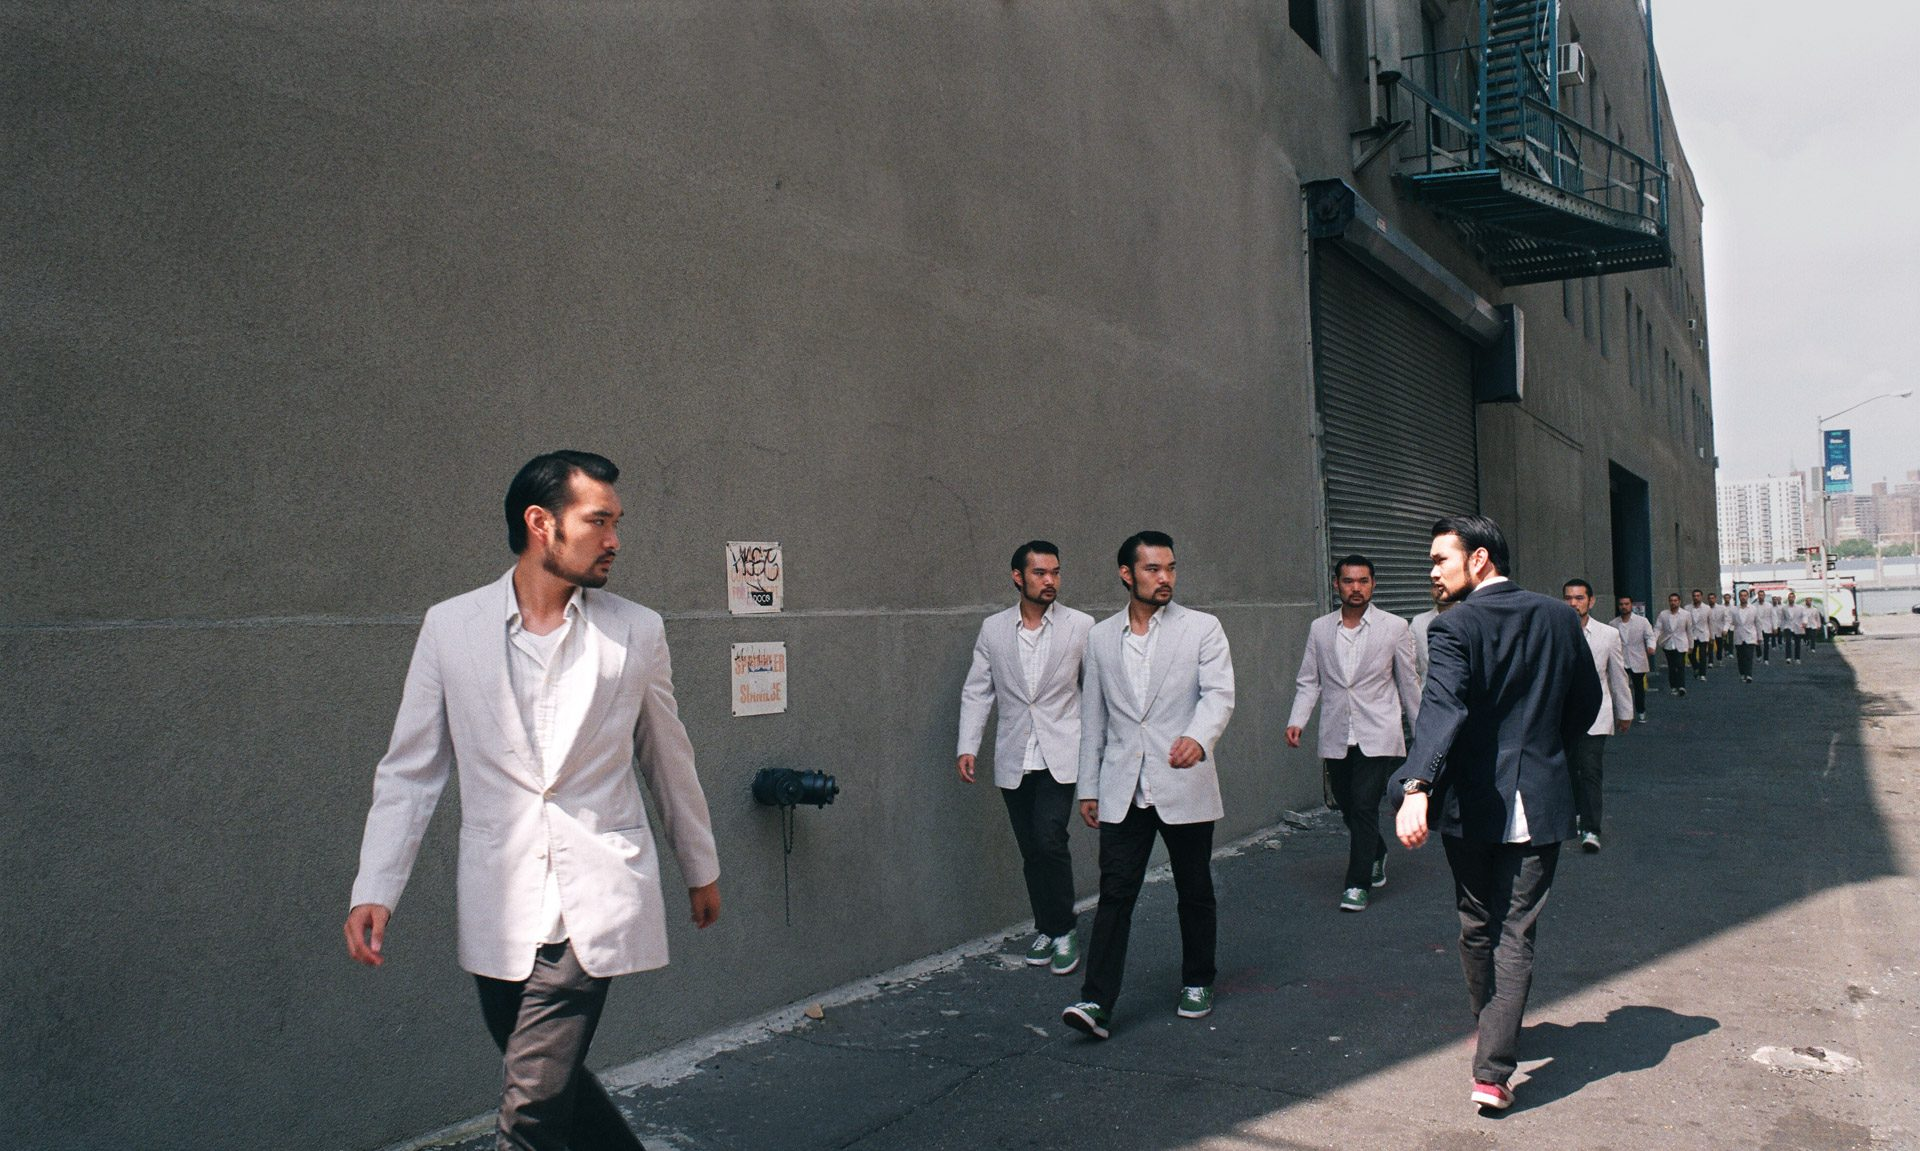 A group of asians in white suits walking one way, staring at the same asian in a dark suit walking the other way.